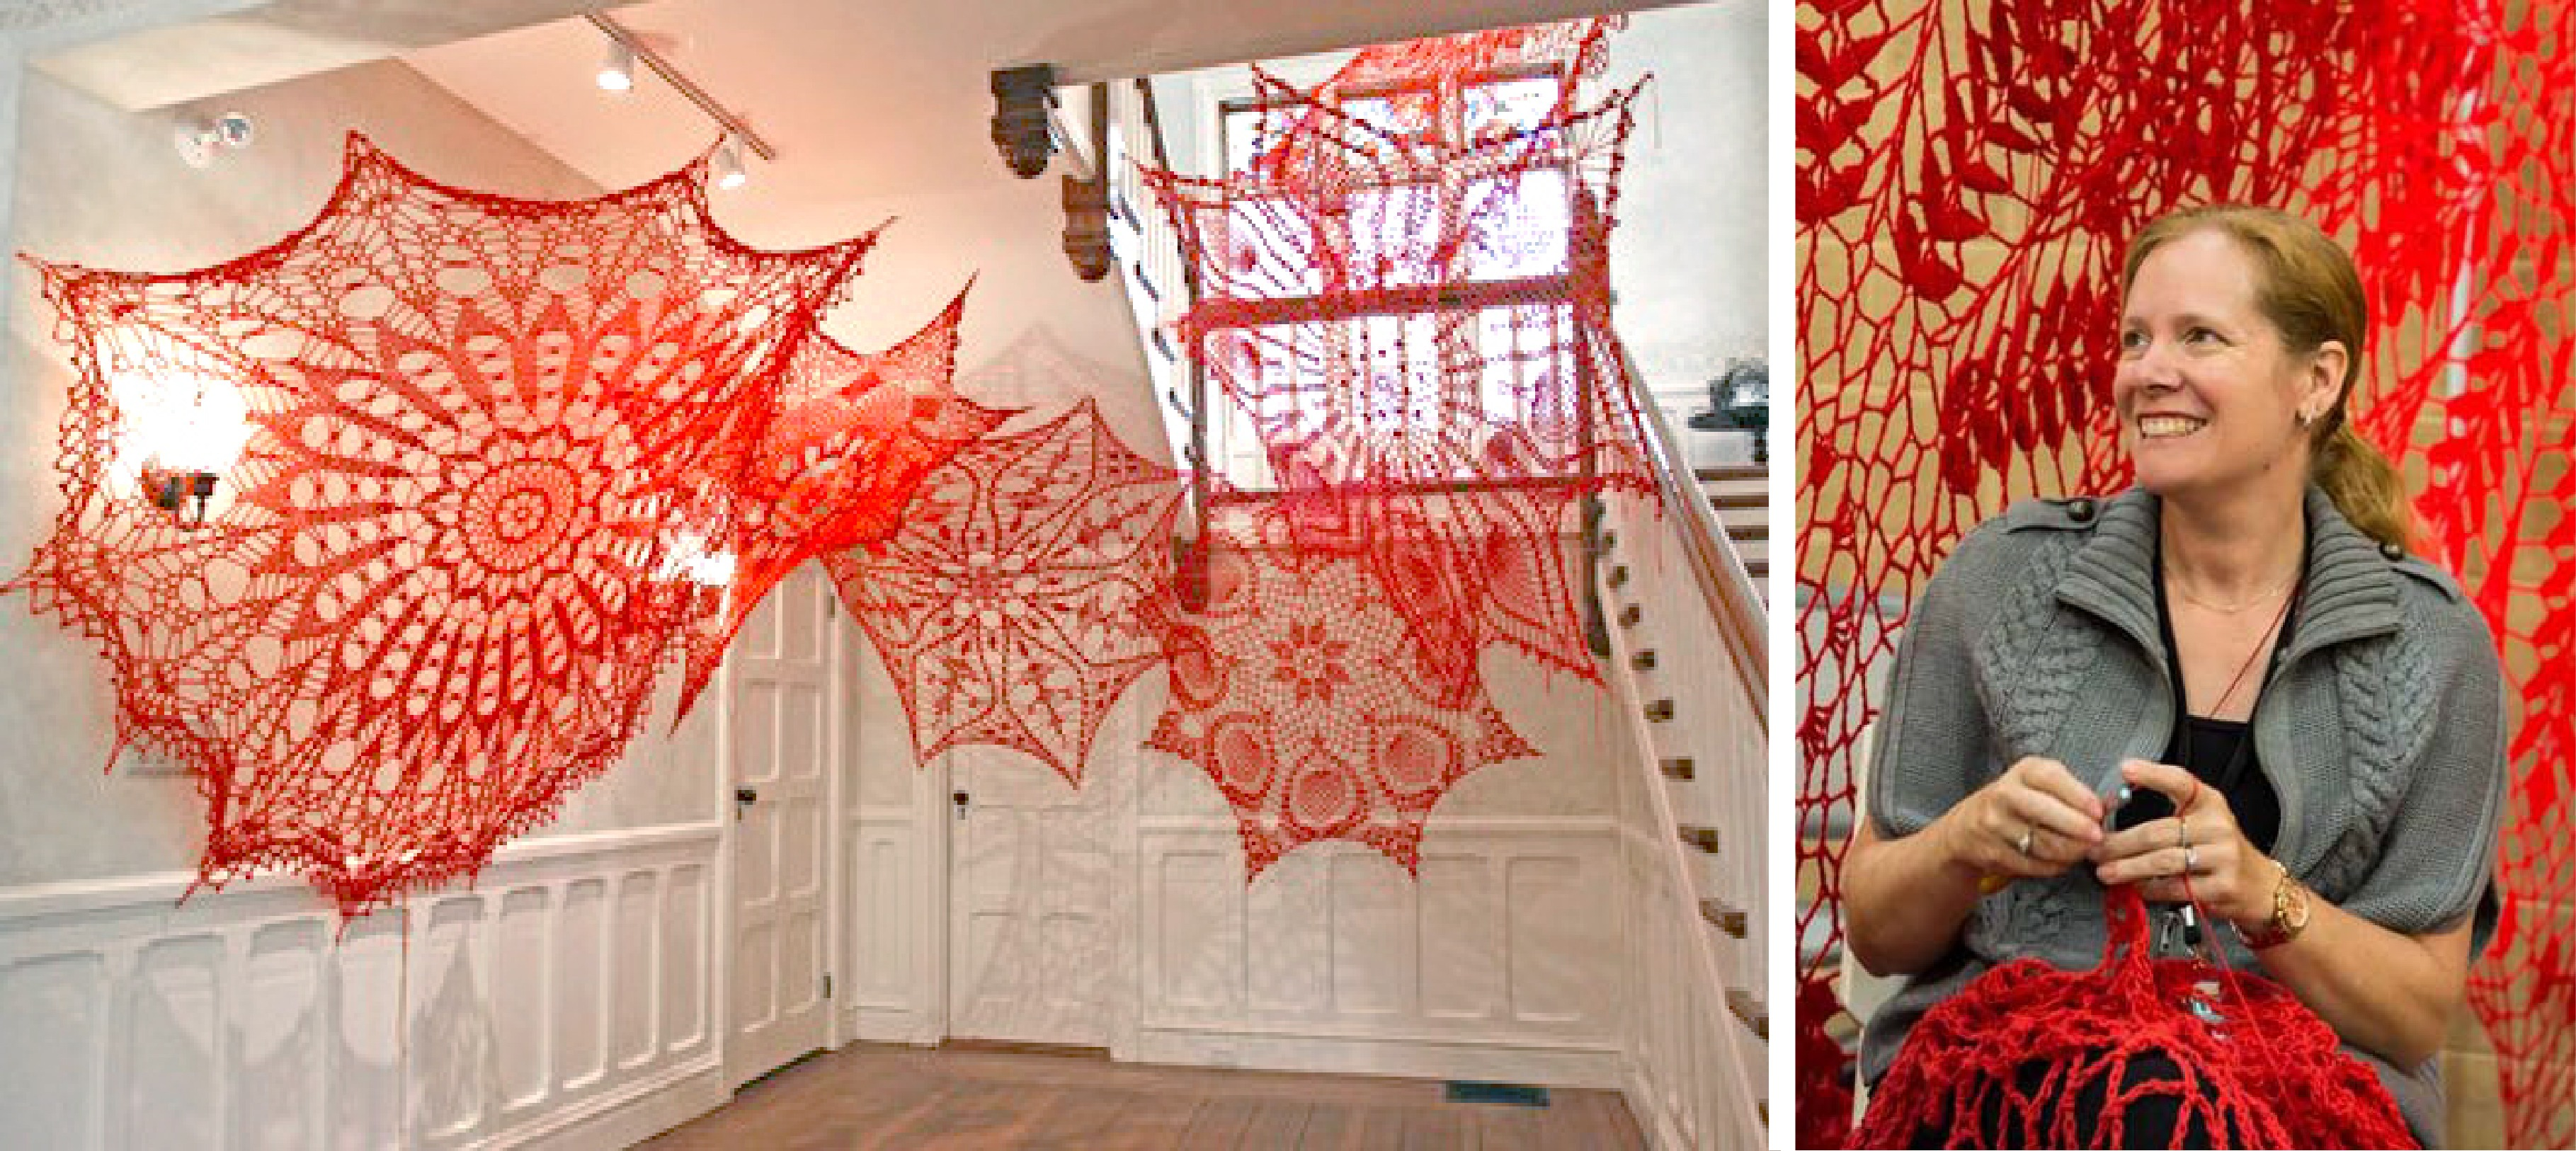 Two pictures are separated by a white line. In the first, large, red doilies drape the walls of a stairwell. In the second, Ashley V. Blalock crochets a red doily.